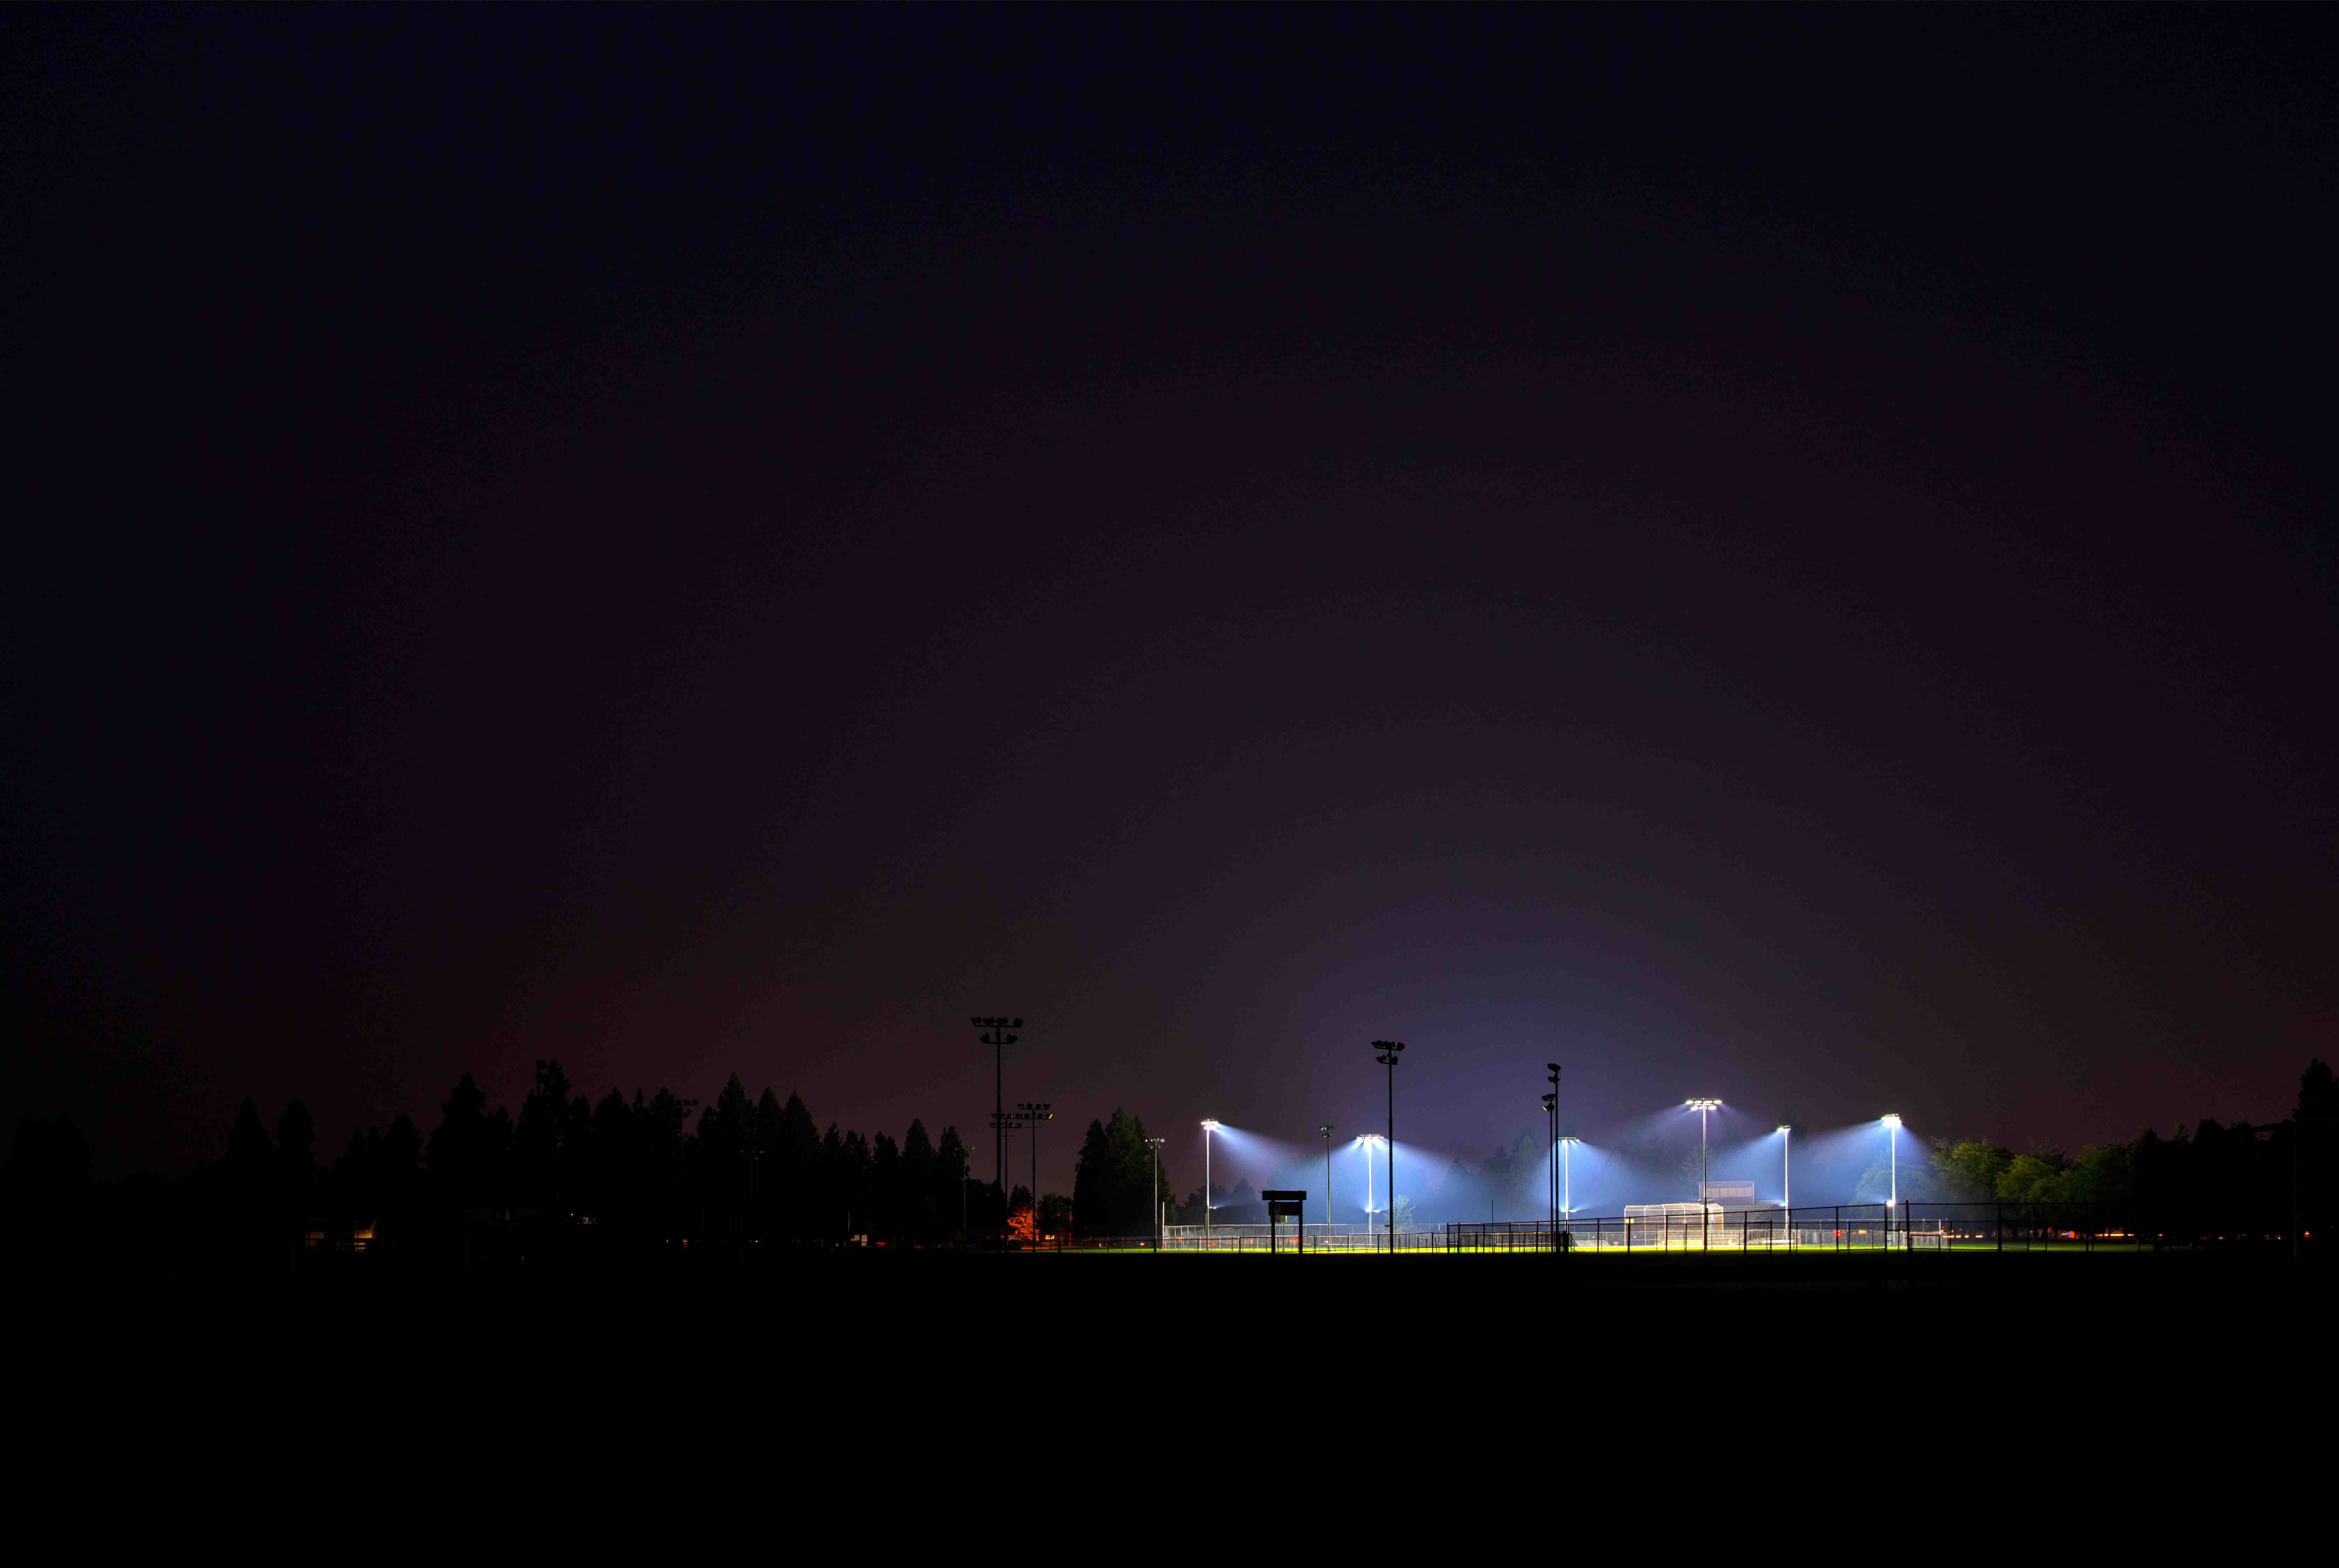 Franklin Sports Complex<br/> Softball Field #1 <br/> LED Lighting Upgrade